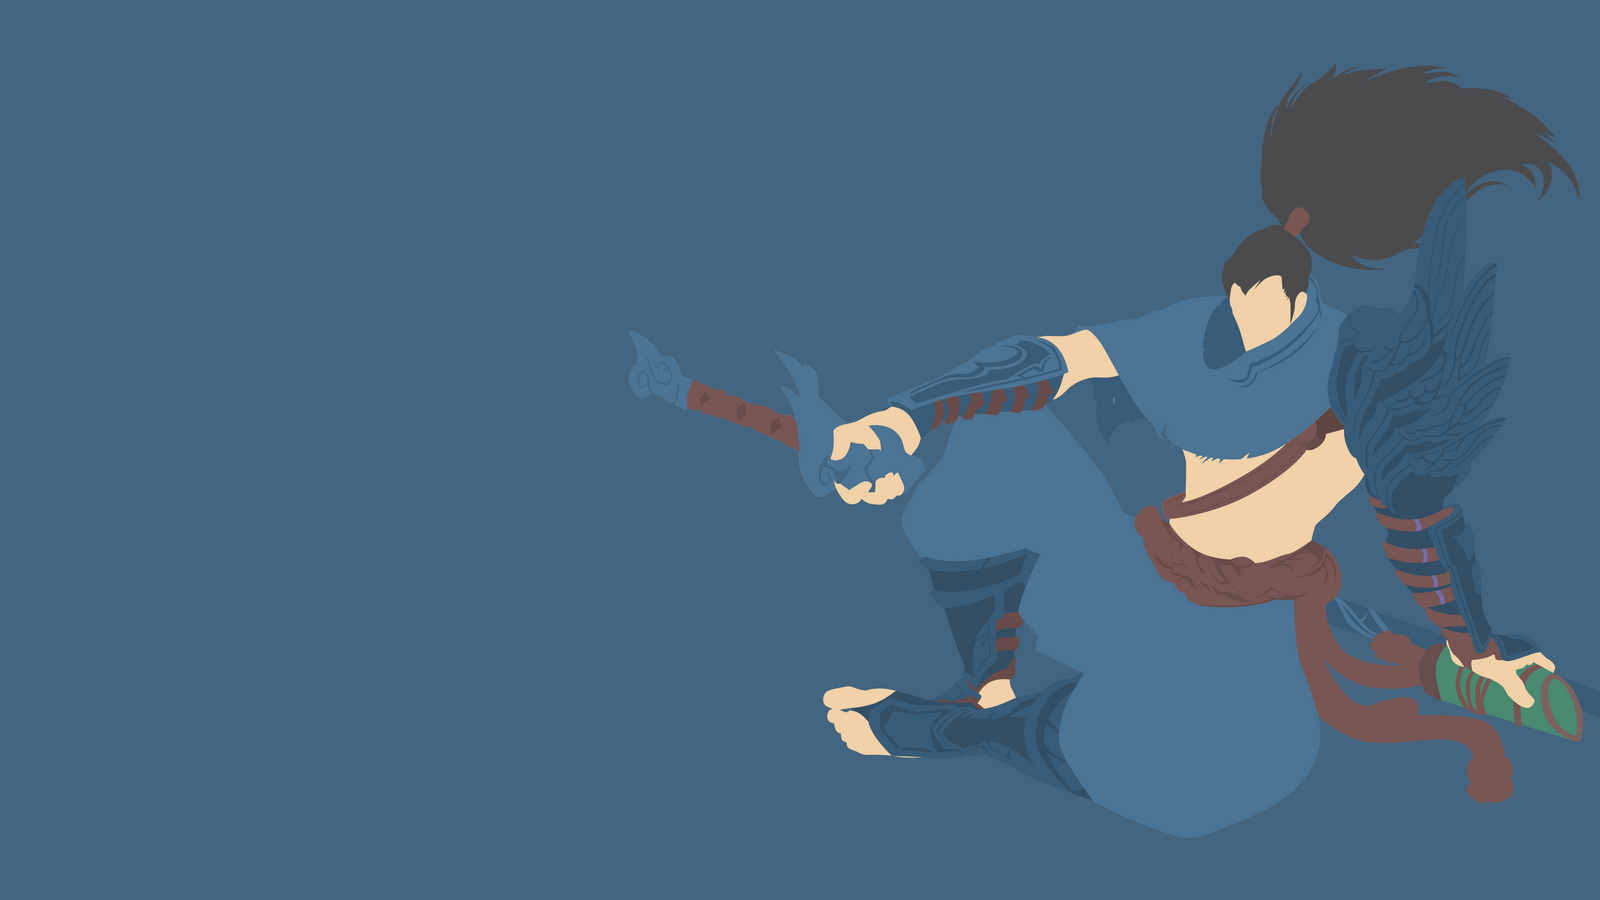 Kalista League Of Legends Minimalist Wallpaper By: League Of Legends By Sangpendosa On